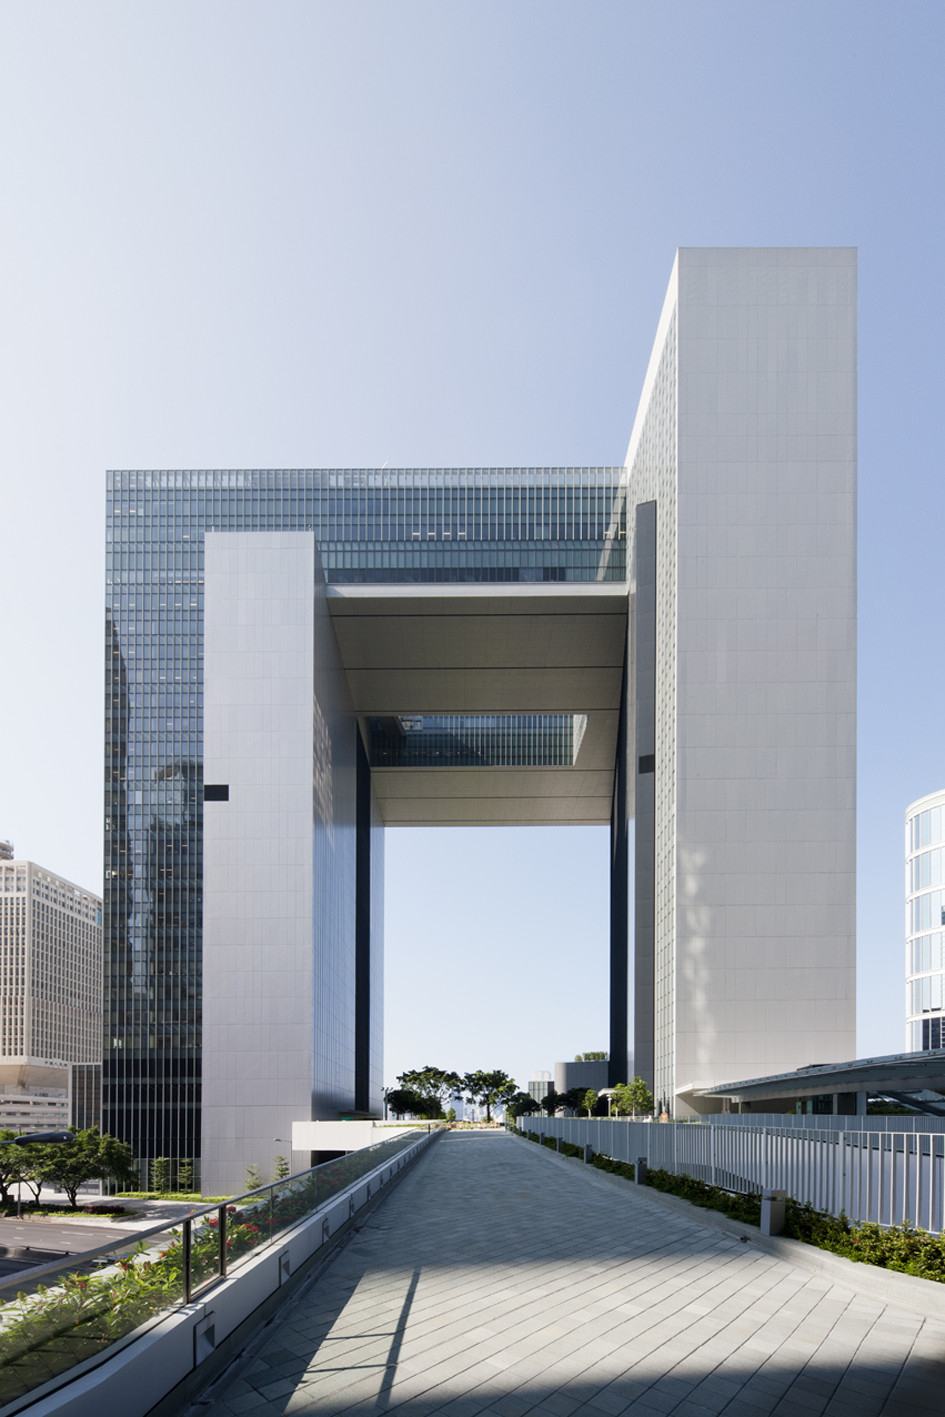 Gallery Of Hksar Government Headquarters Rocco Design